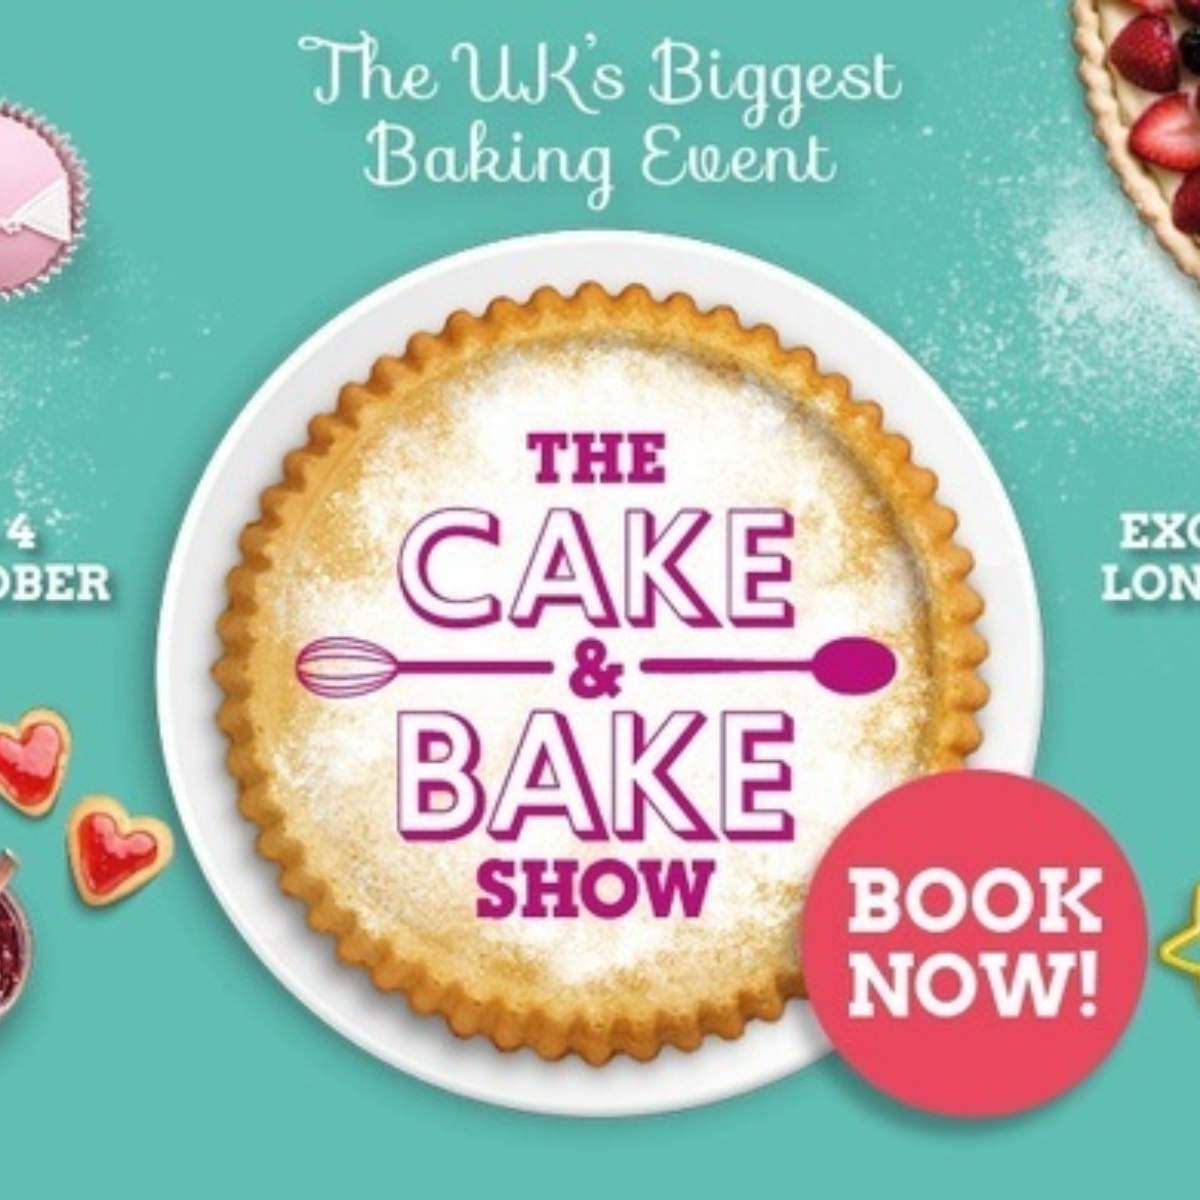 The Cake & Bake Show 2020 Images